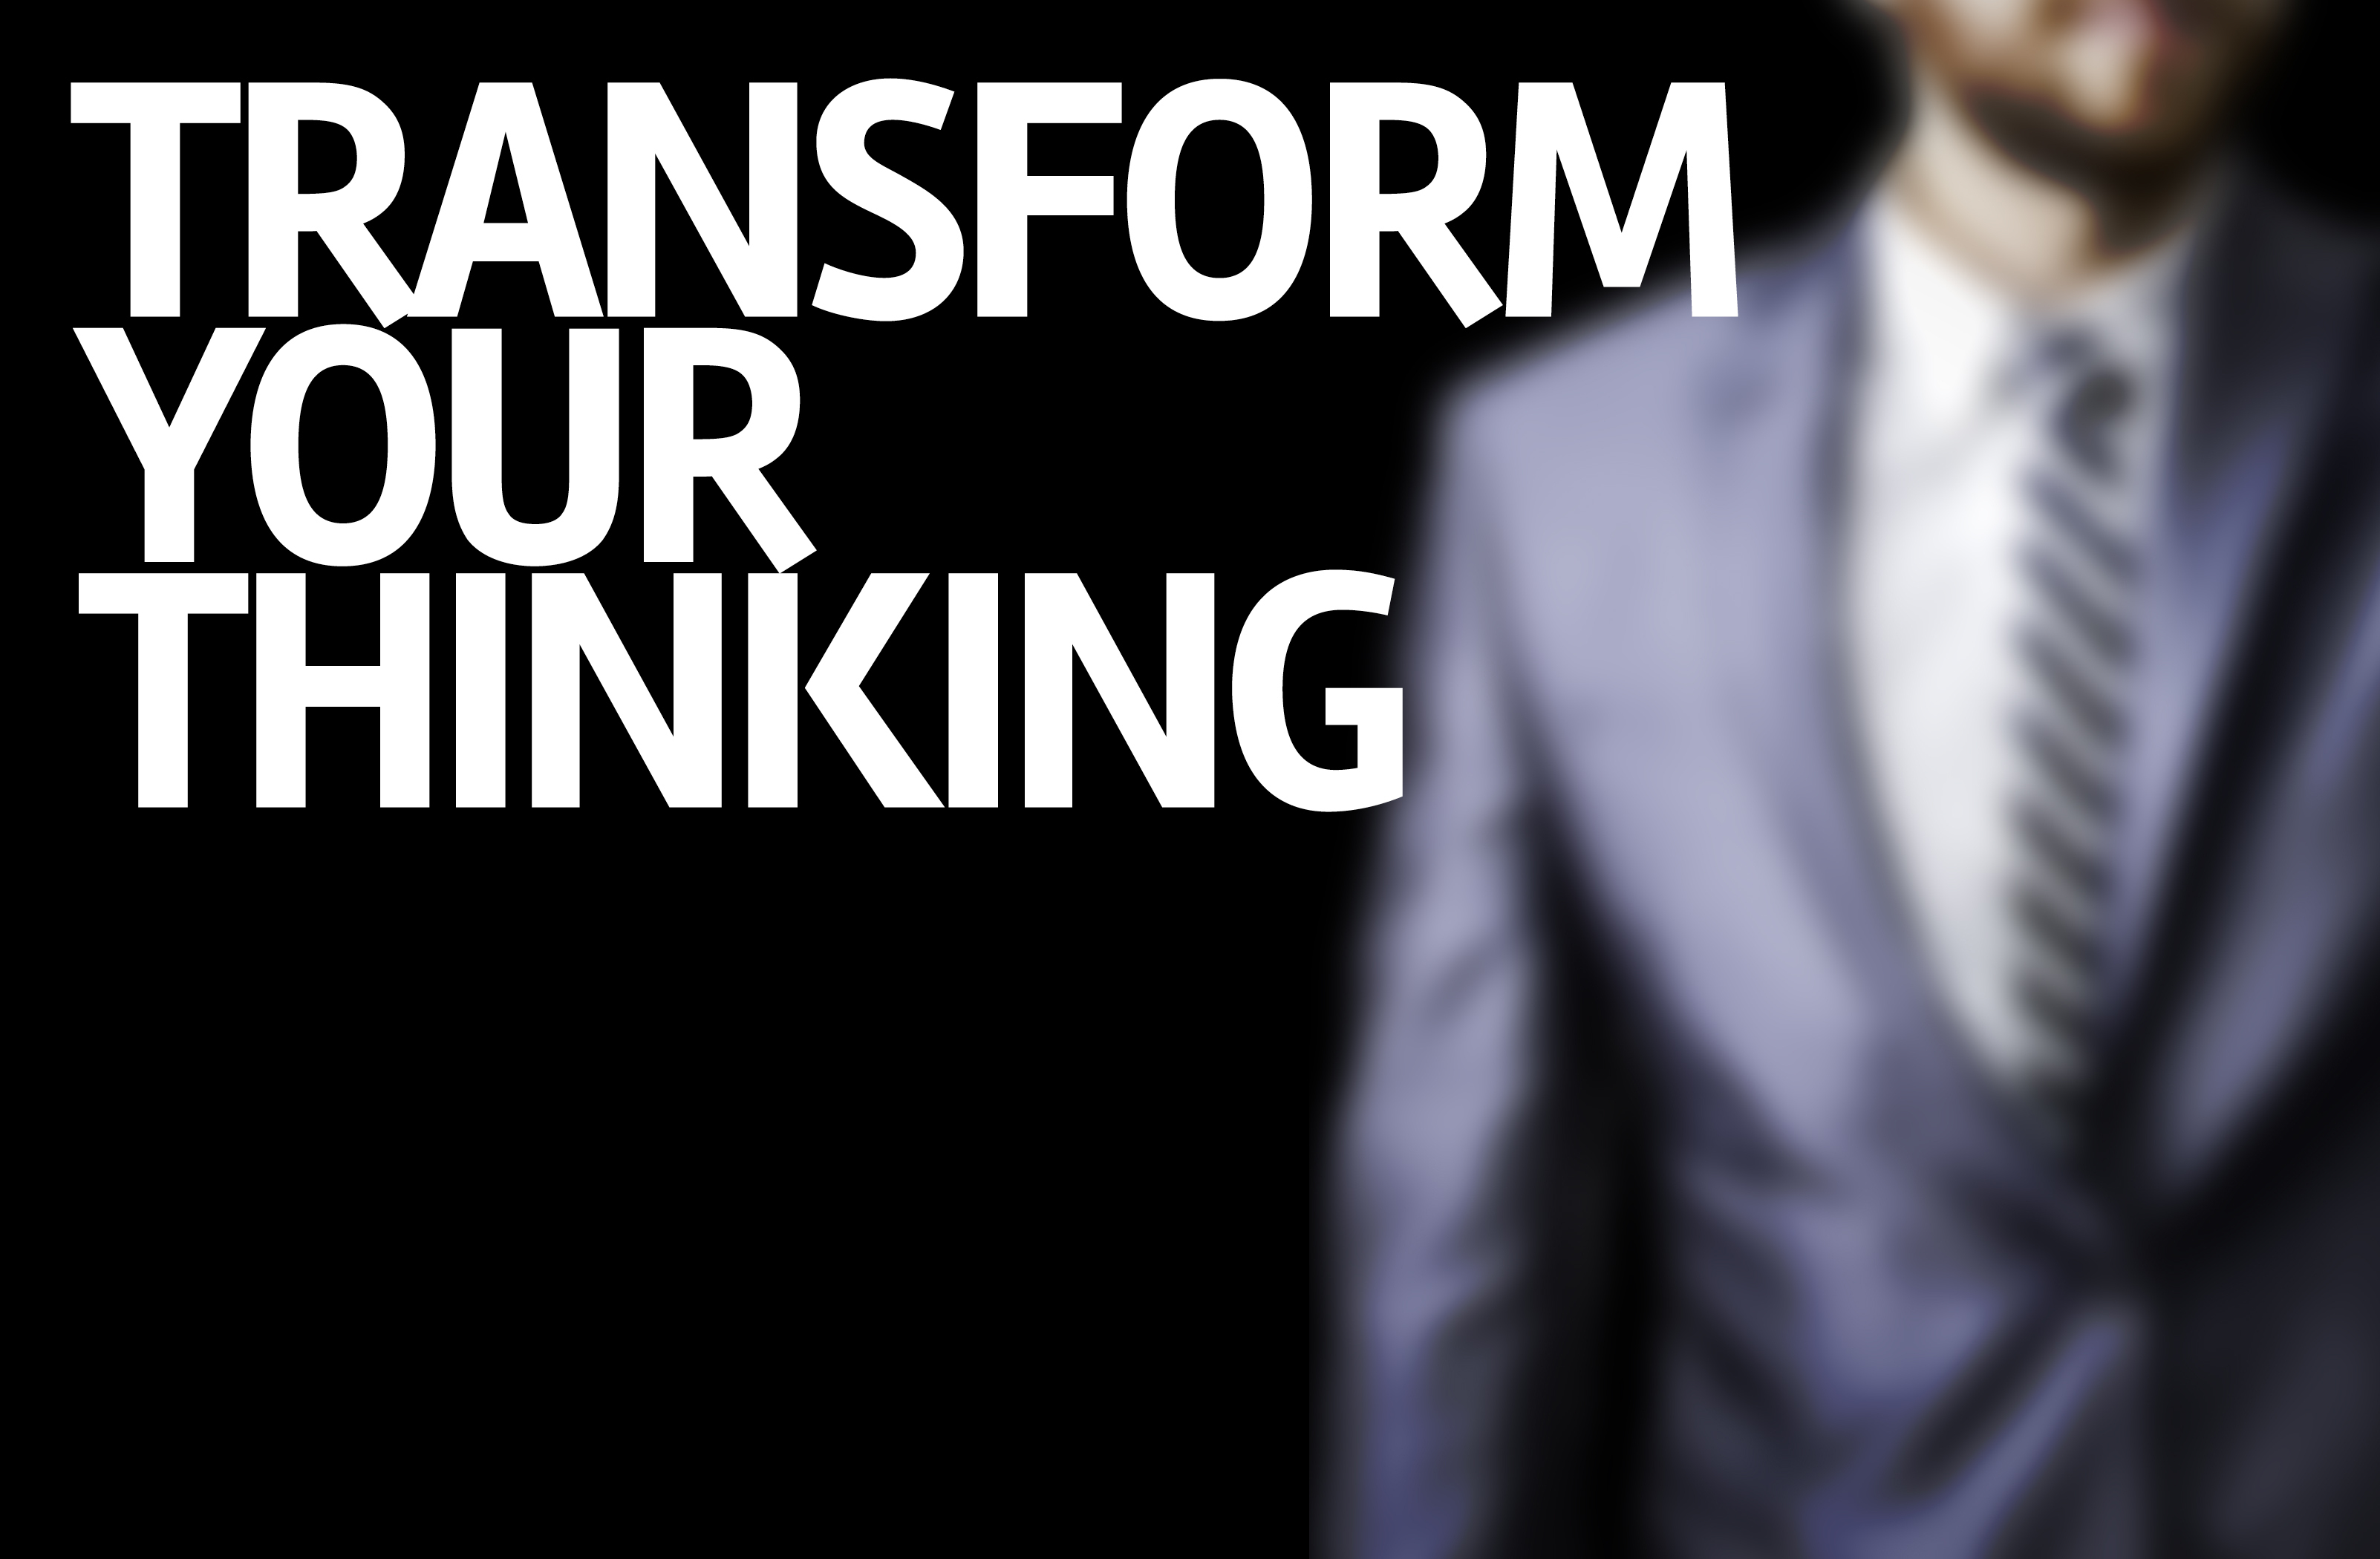 Customer Profiling - Transform your thinking